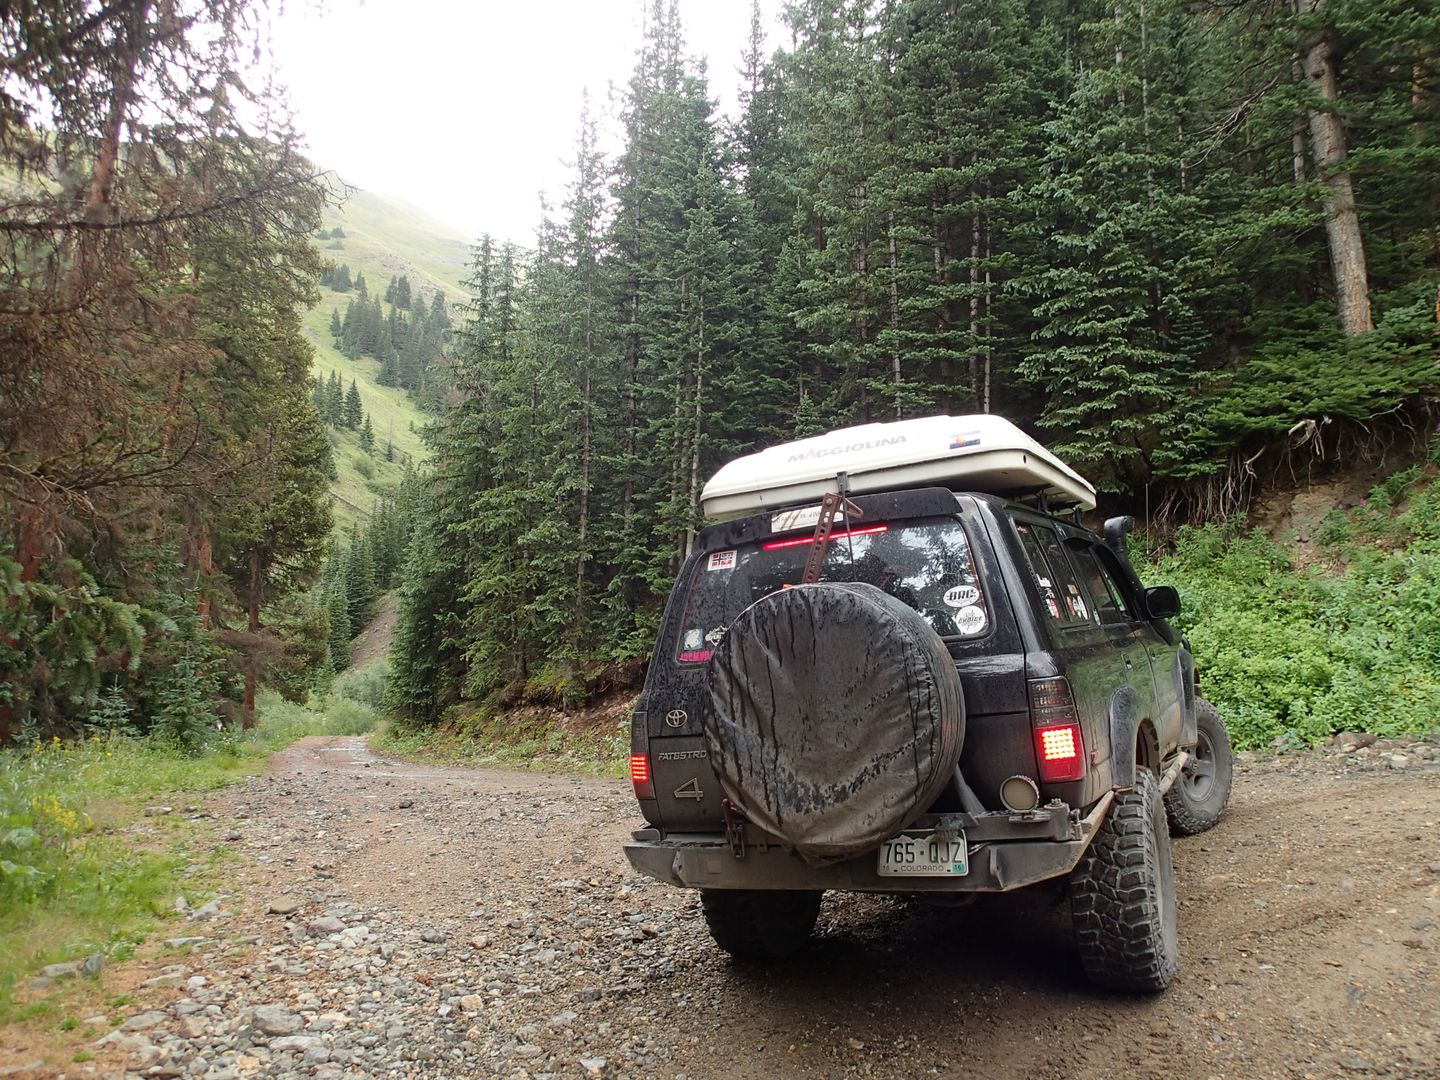 Stony Pass - Waypoint 4: Straight or Right Uphill